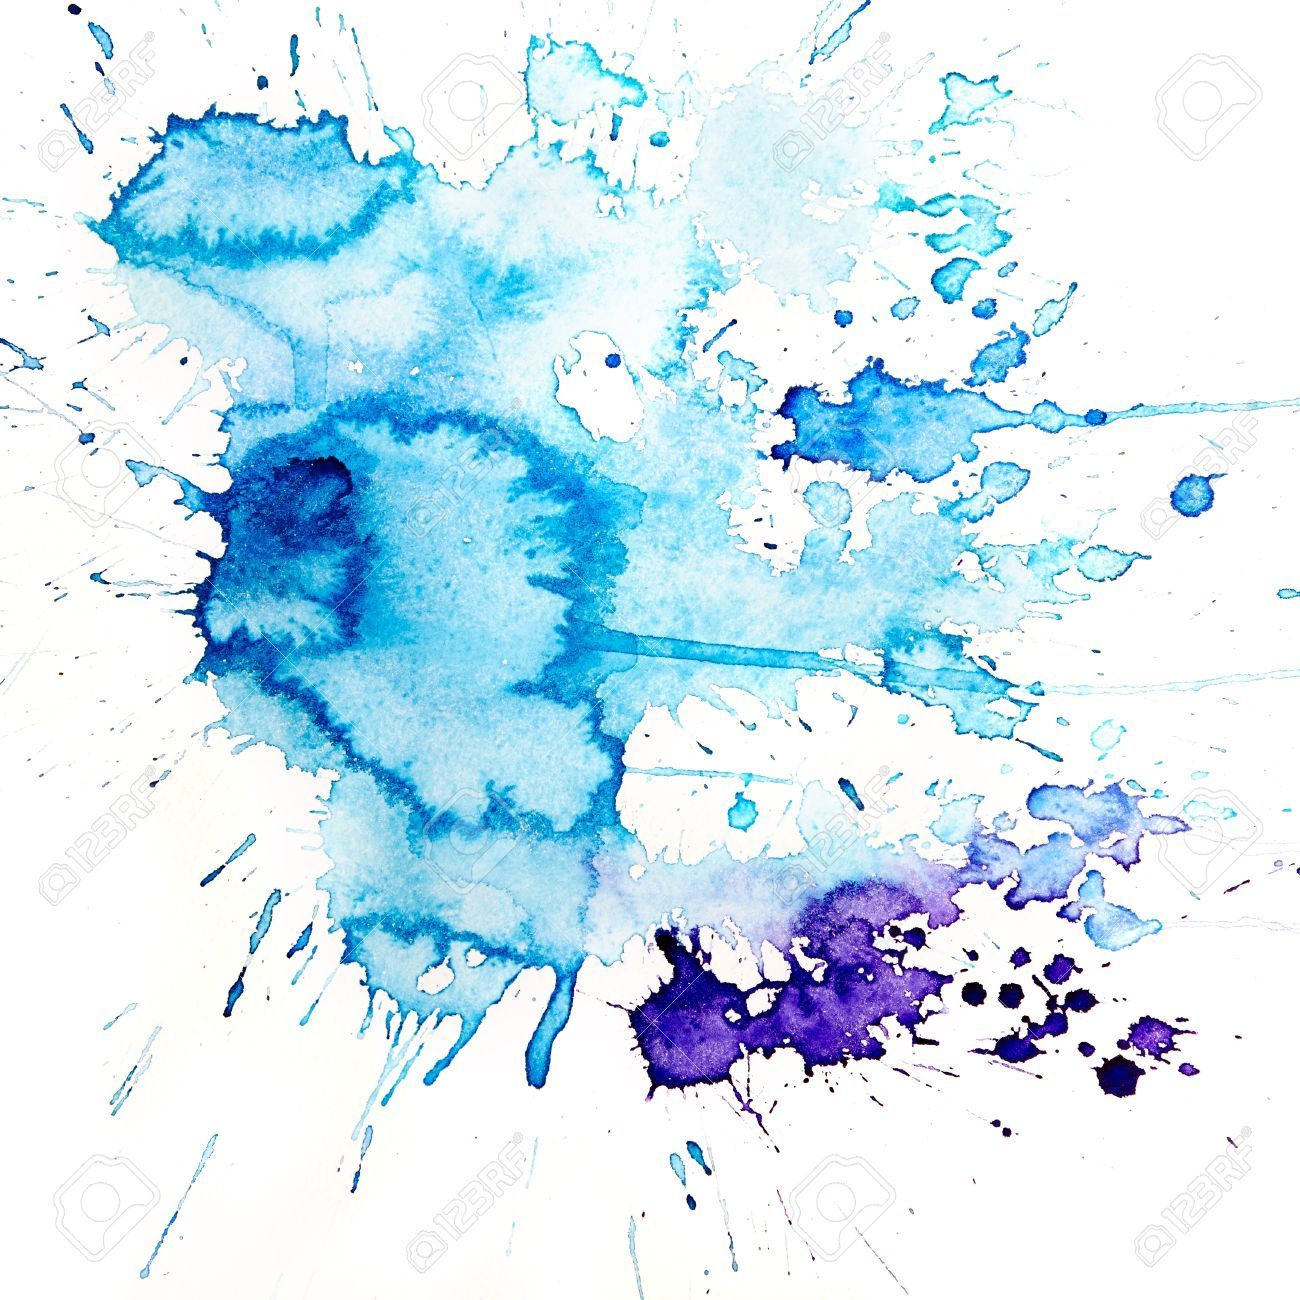 Stock Photo In 2020 Art Background Watercolor Art Diy